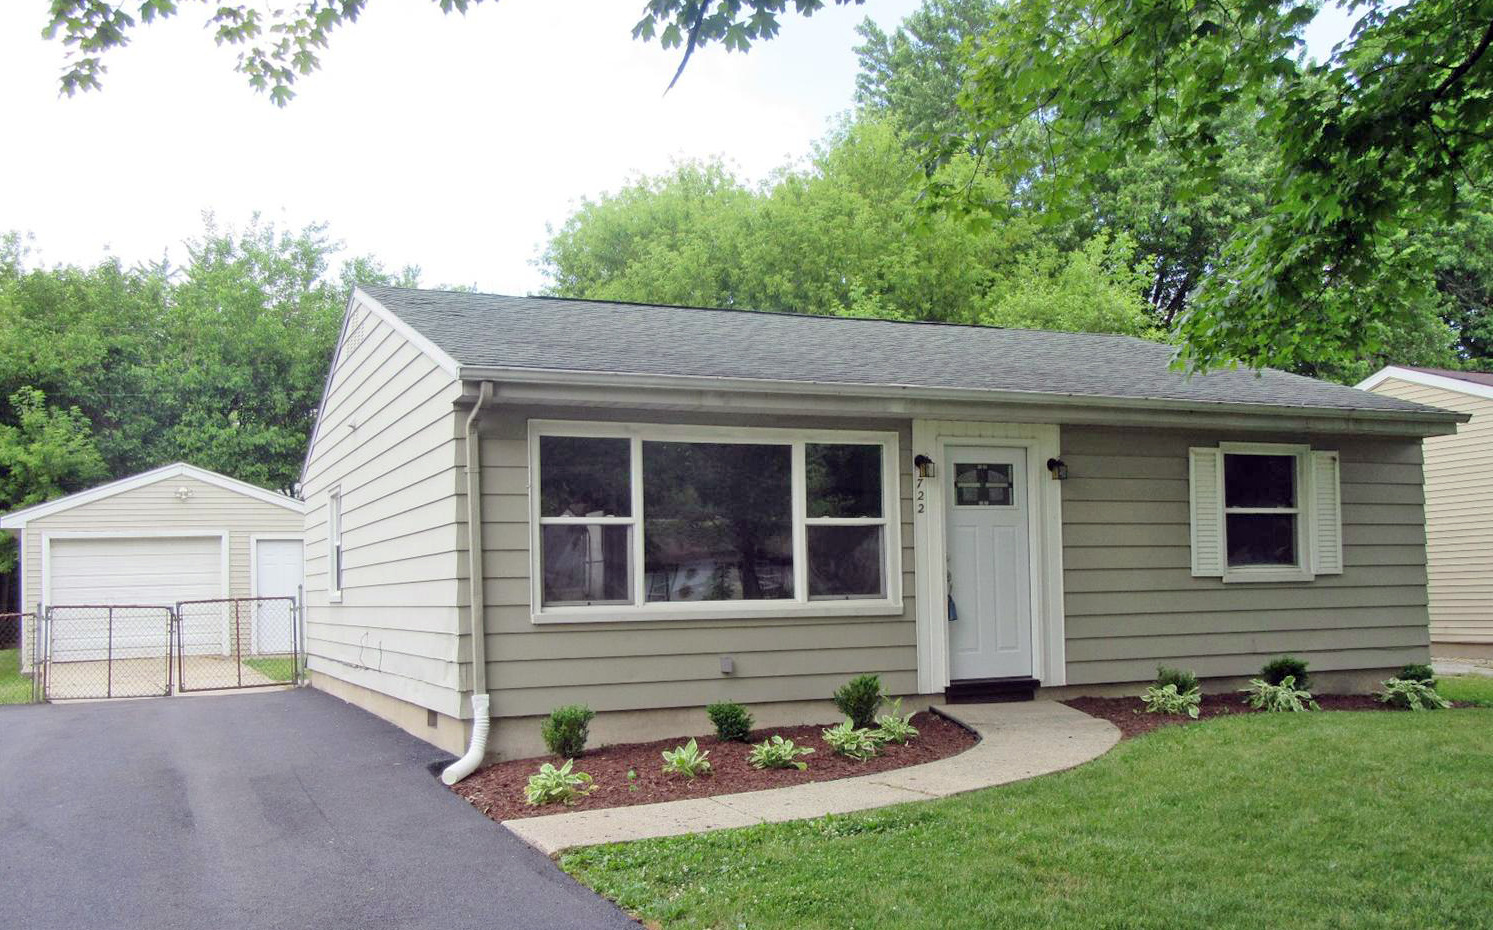 Referral from past clients Valpo home sold Jeff & Grace Safrin were buyers agents